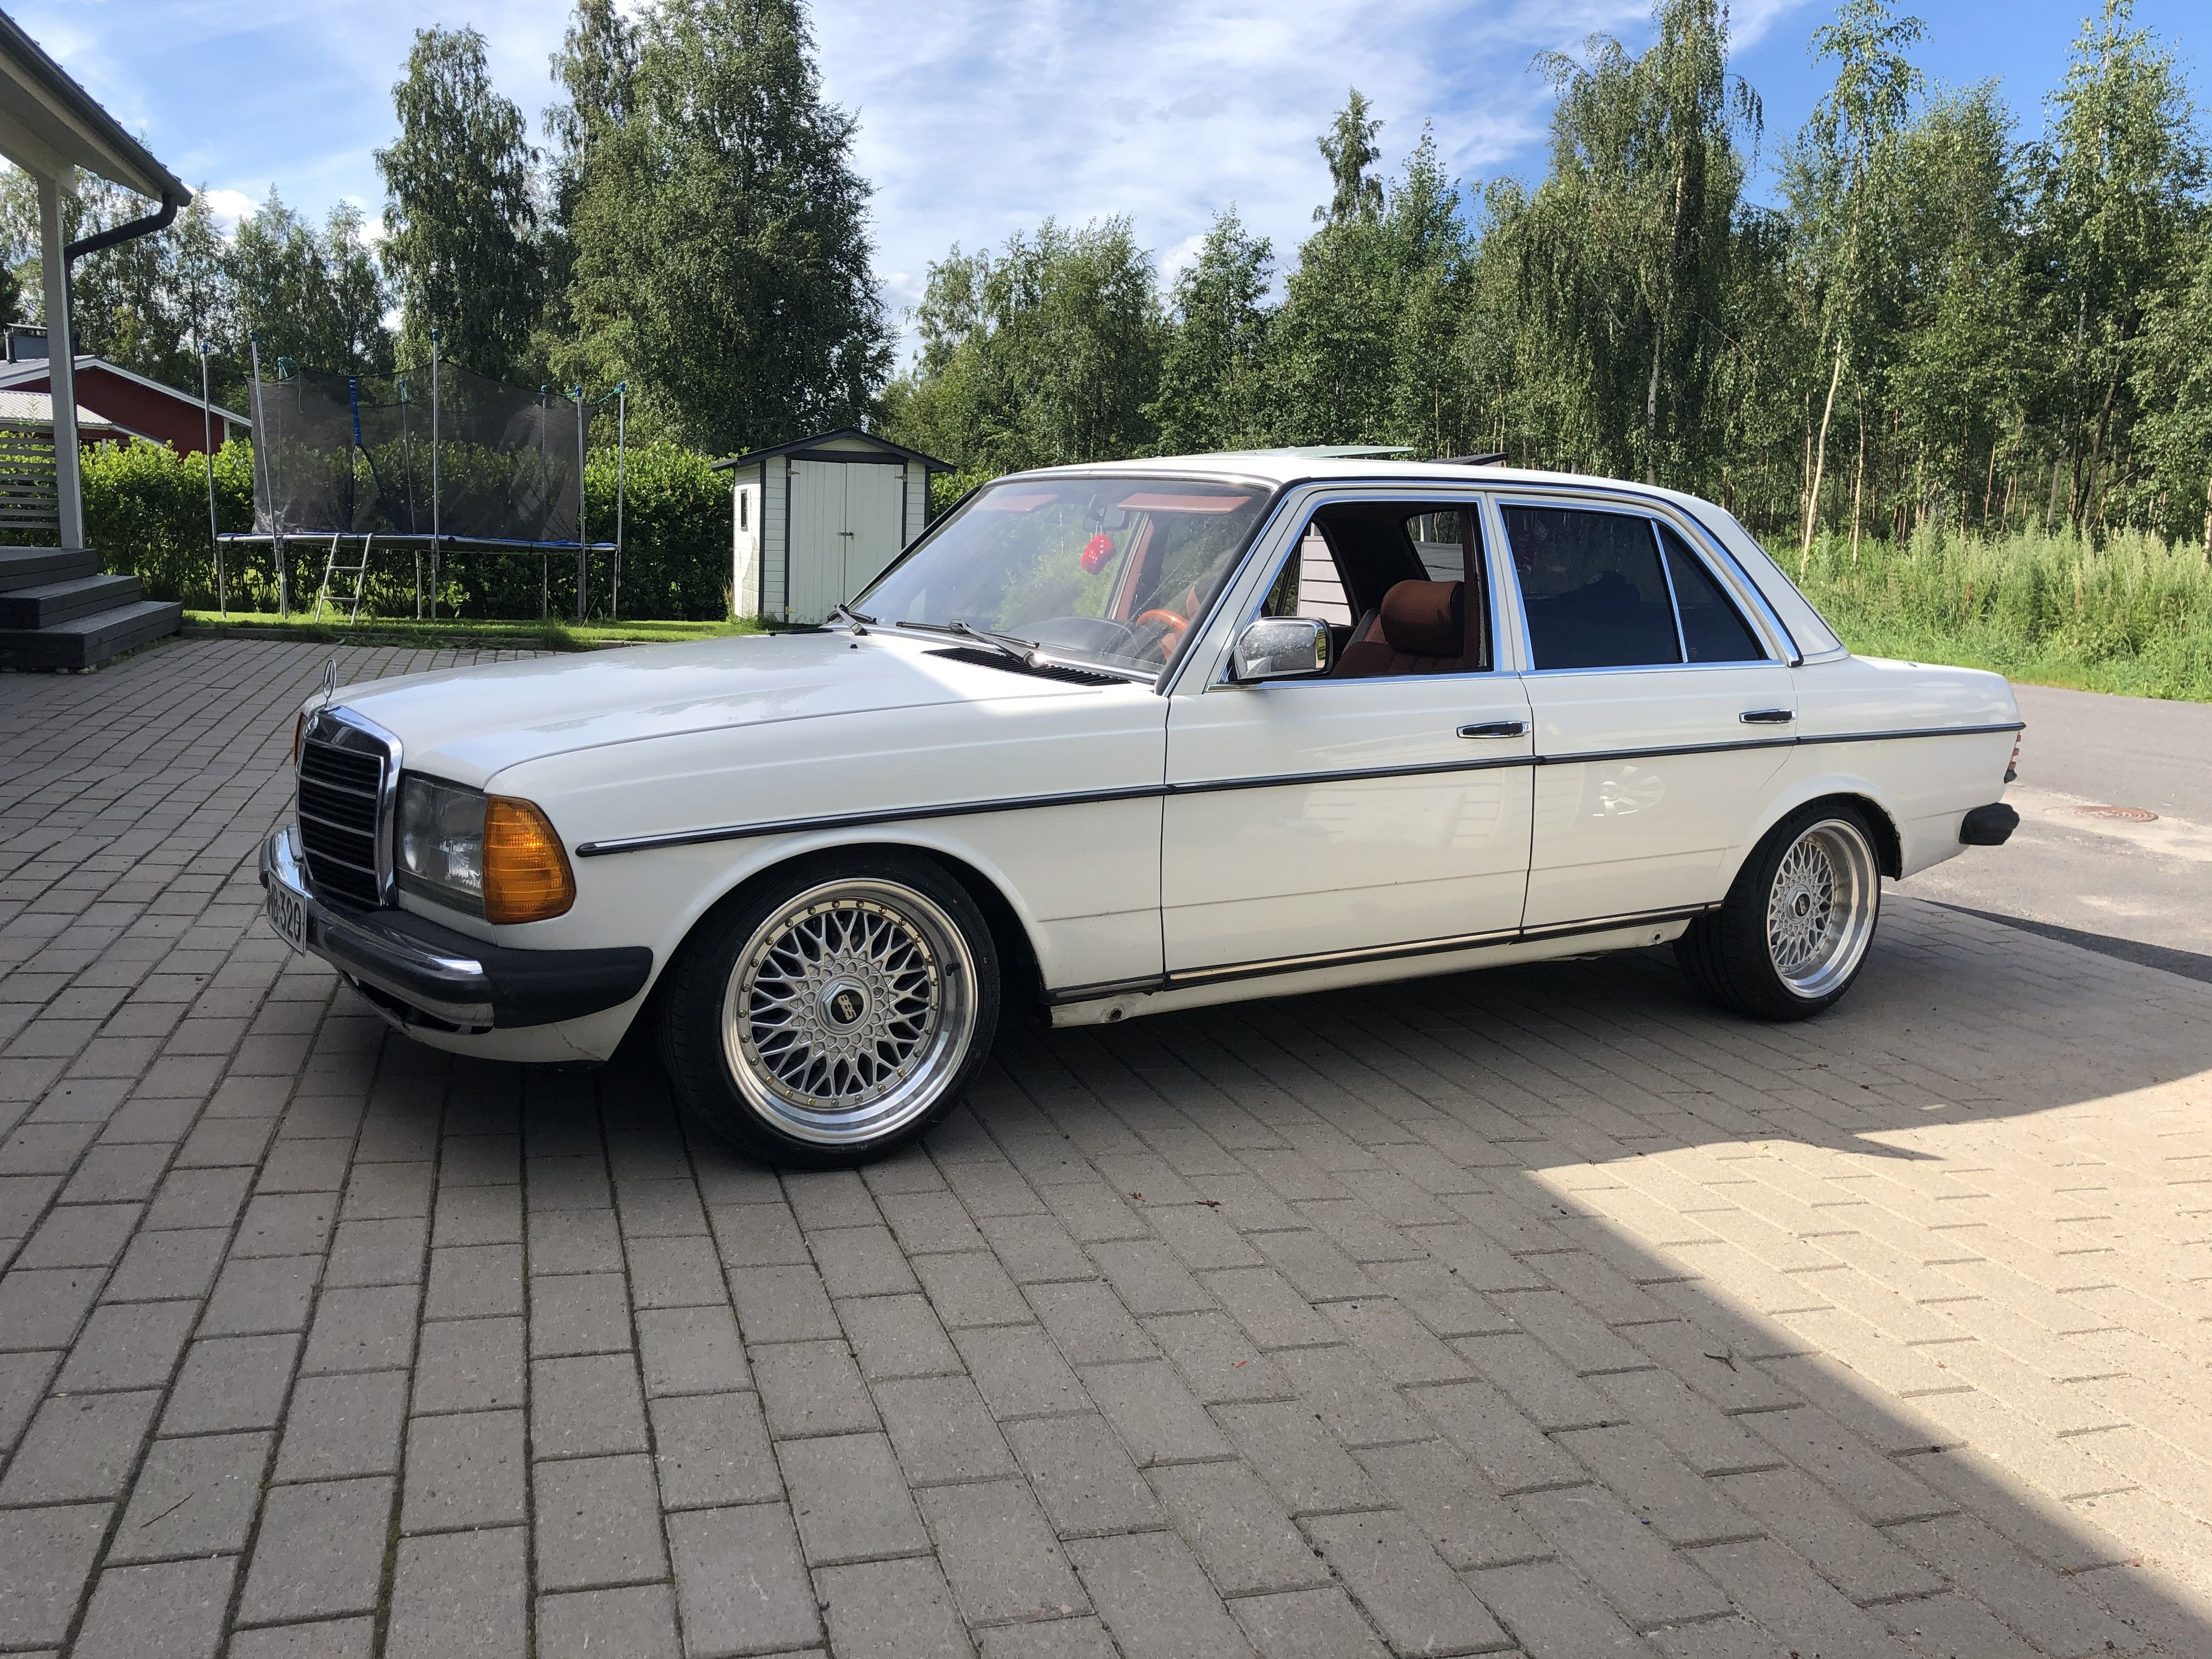 Pin By Hannu Huitula On Mercedes W123 Mercedes W123 Mercedes Benz Benz